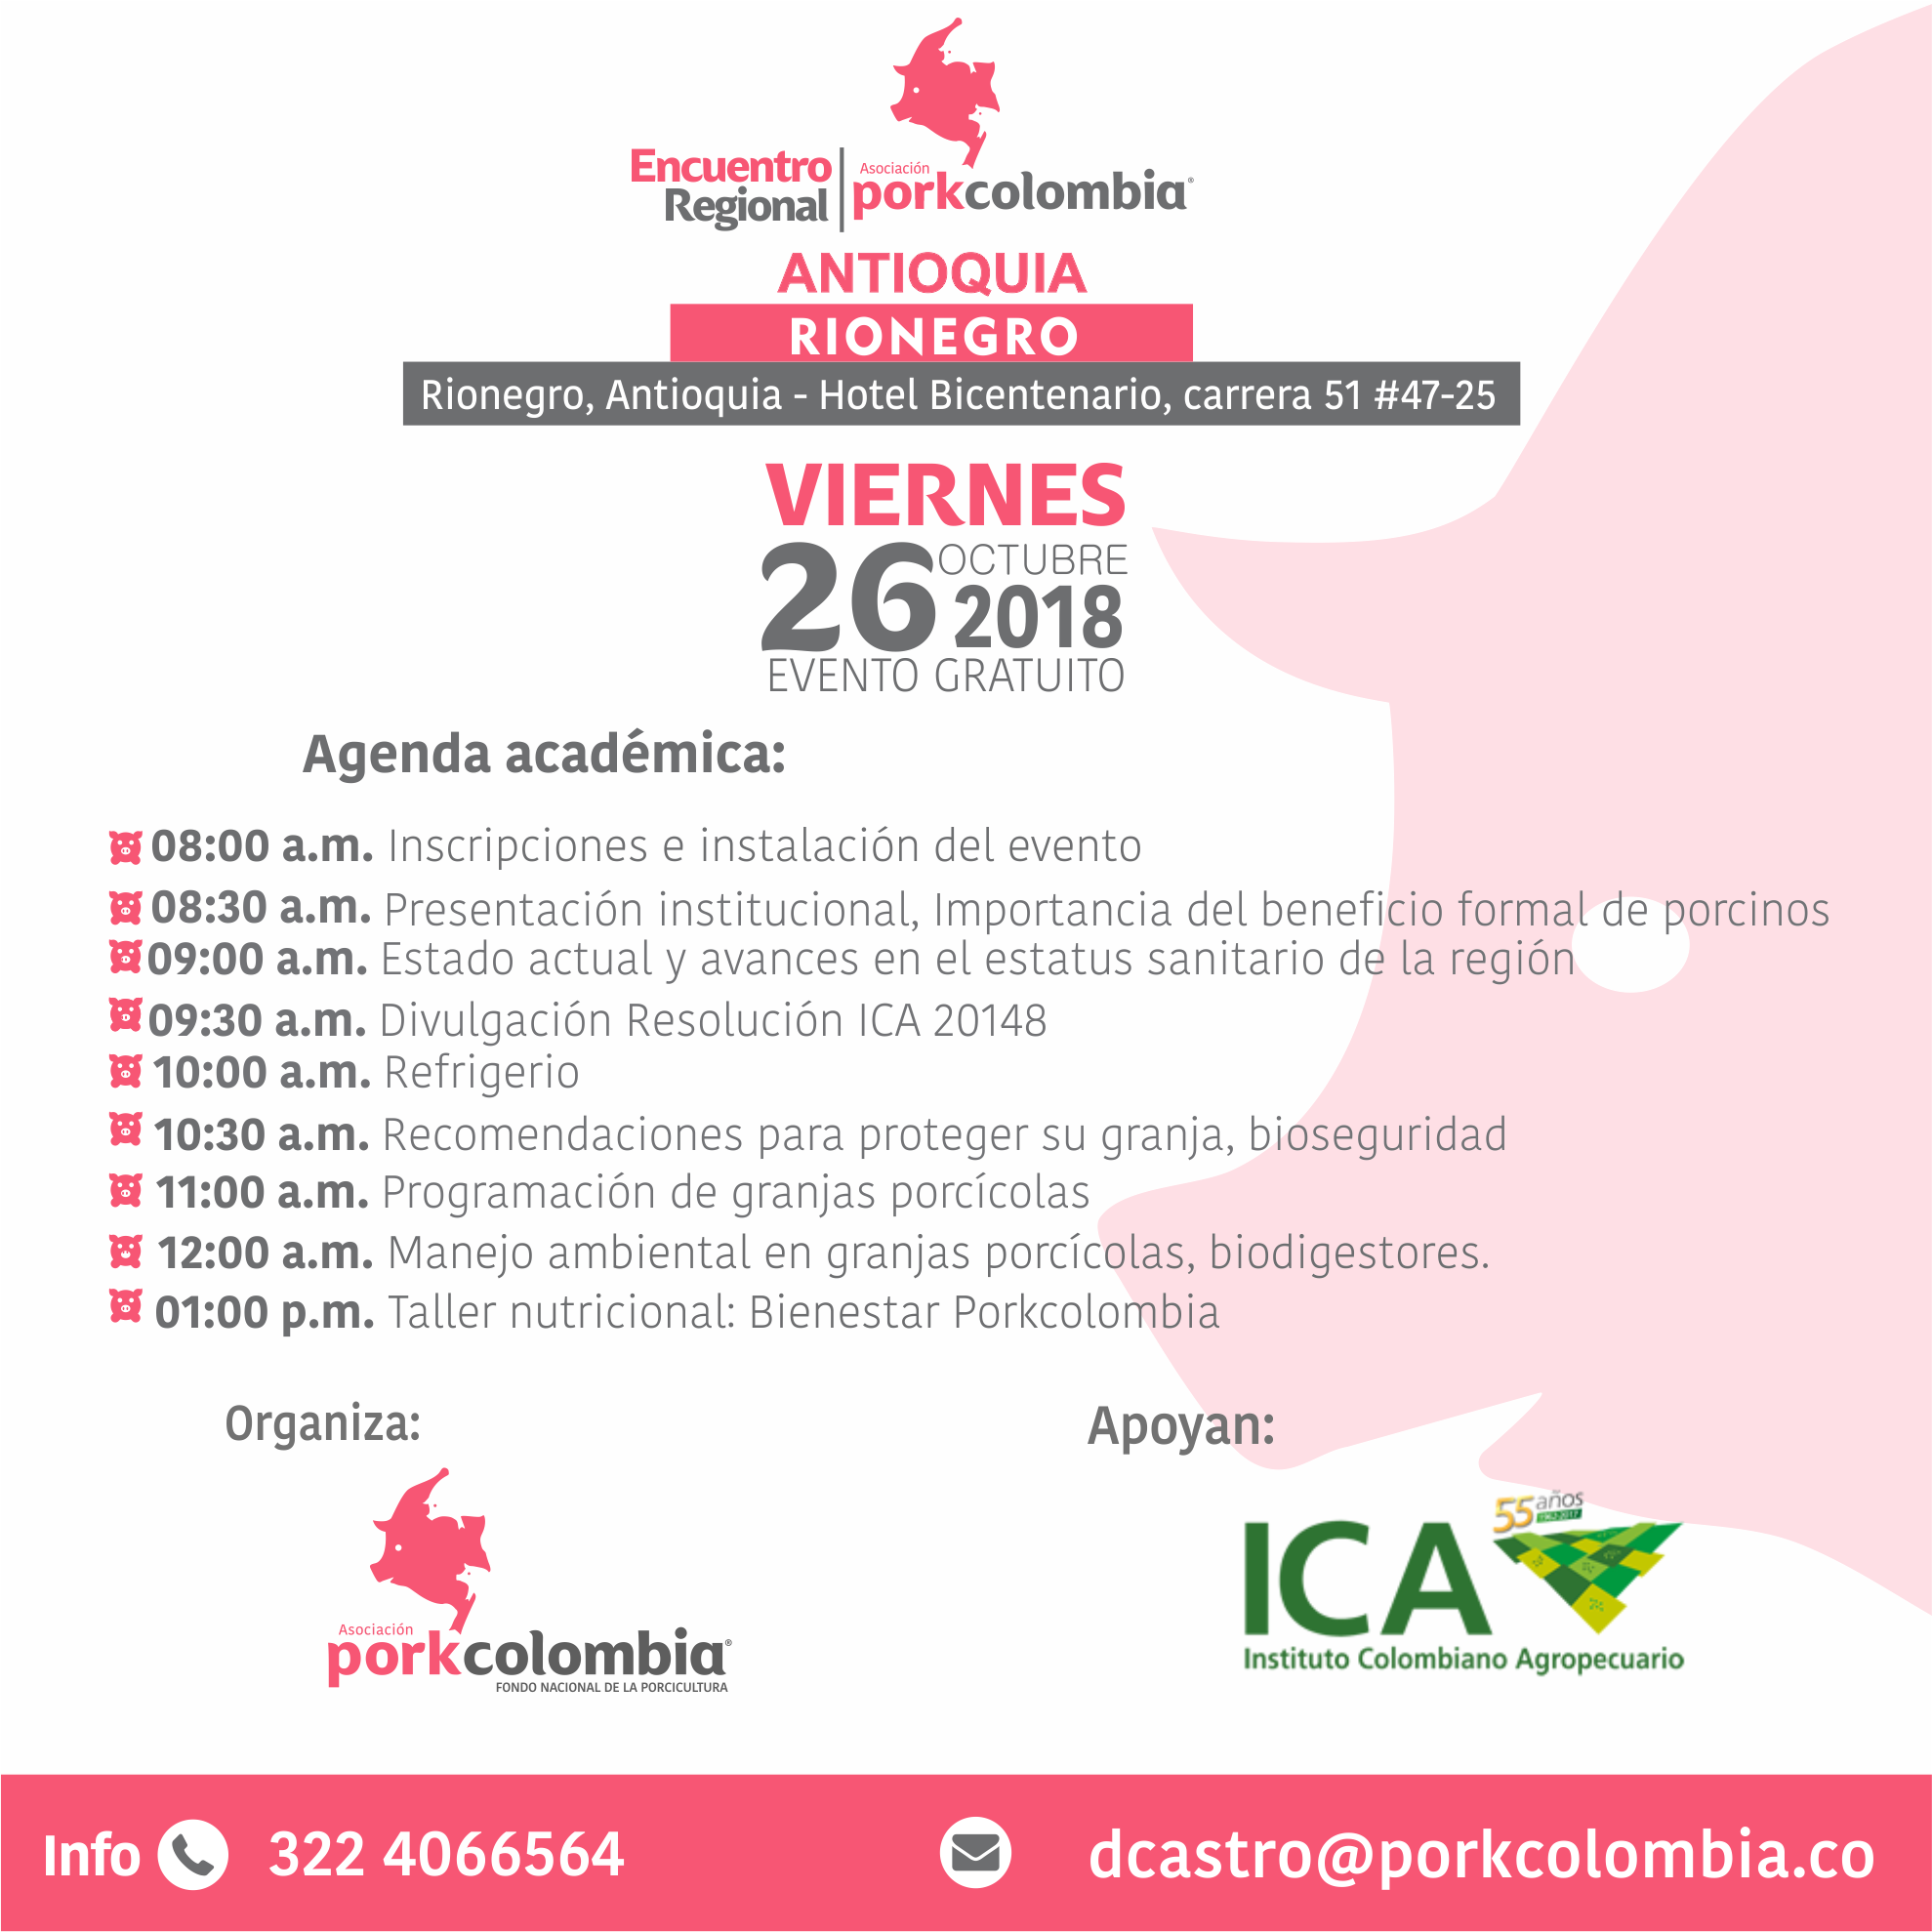 https://www.porkcolombia.co/wp-content/uploads/2018/10/ENCUENTRO_26_OCT.png